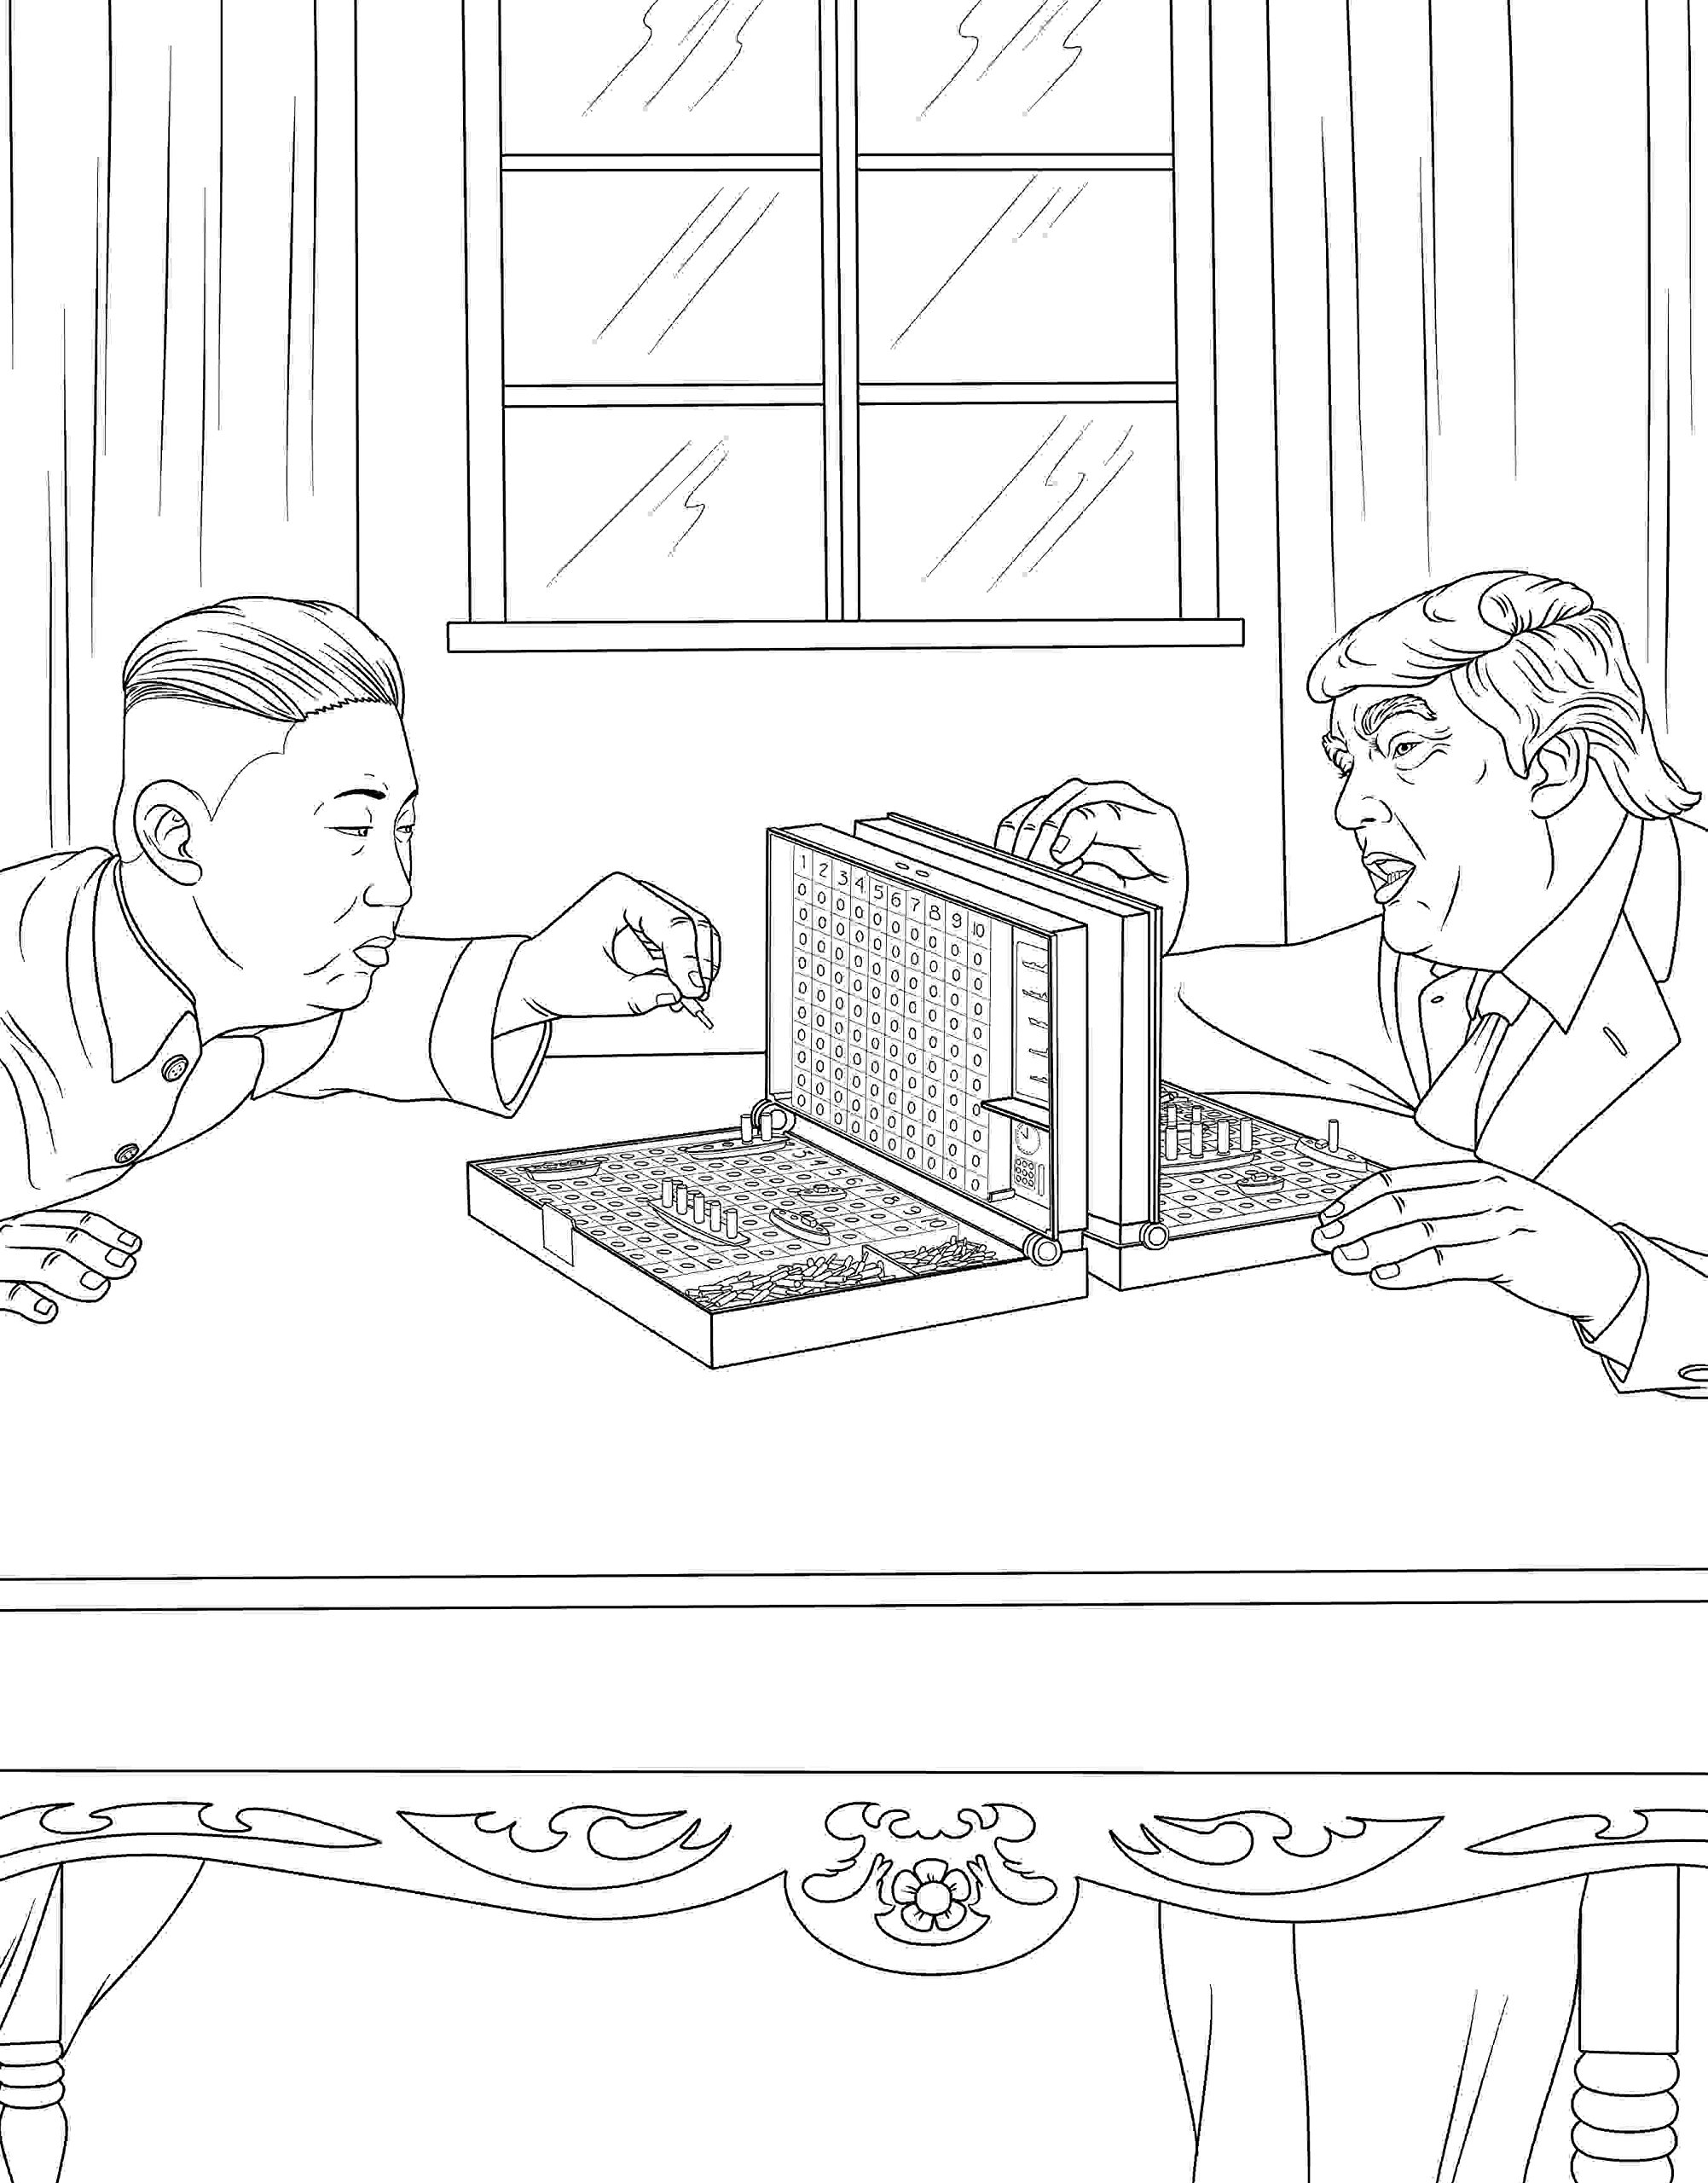 amazoncom the trump coloring book 9781682610282 m g anthony books - Make Coloring Pages